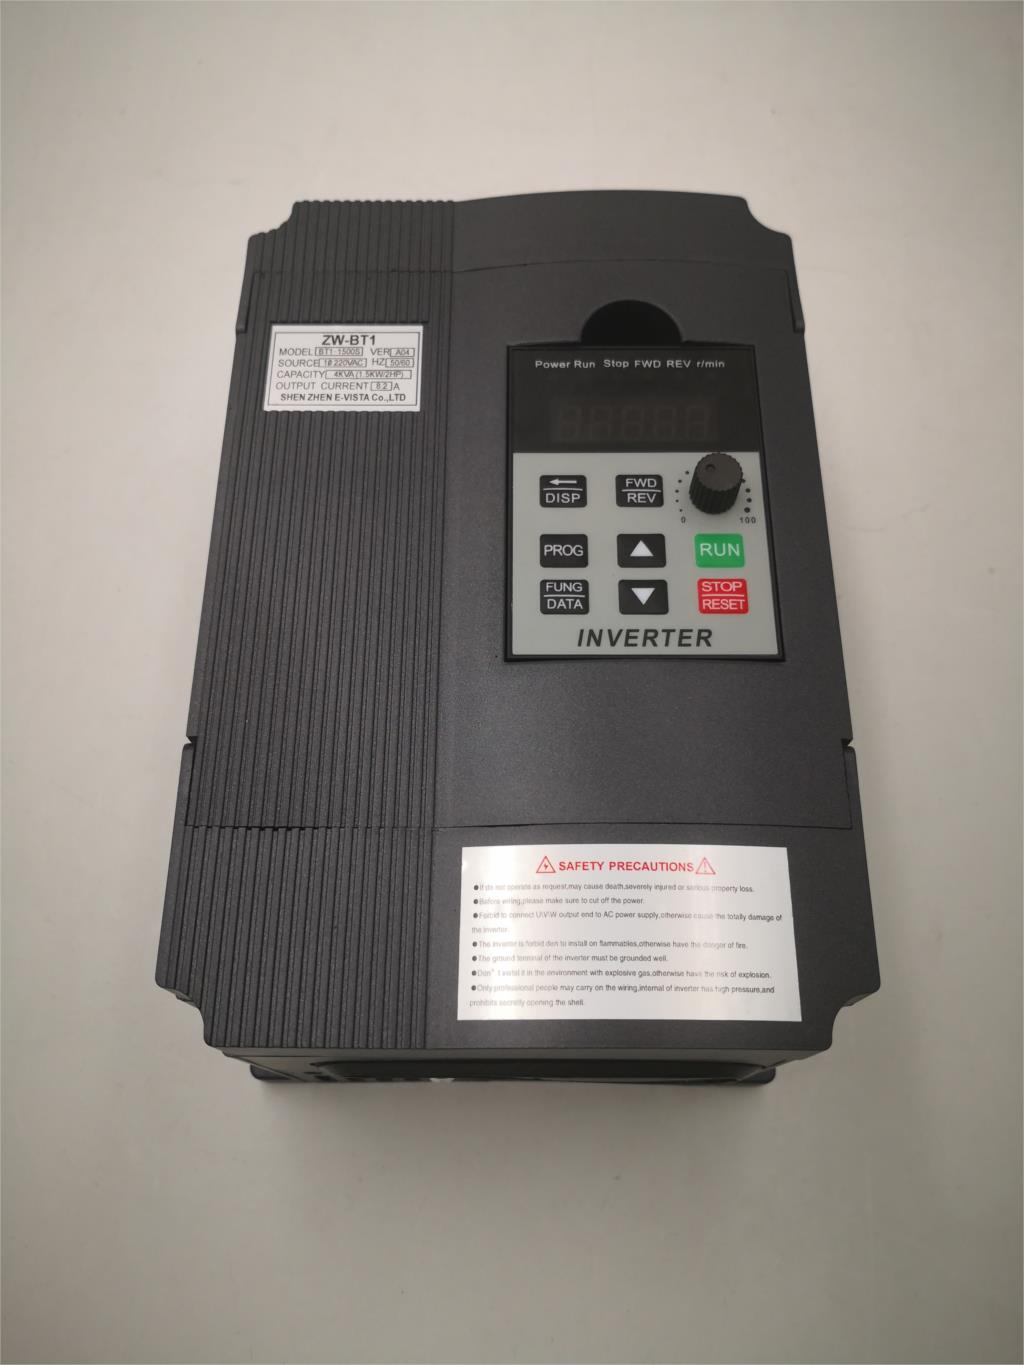 VFD 750W 220V Single Phase Input and Output 3 Phases 220V Frequency Inverter Free shipping-in Inverters & Converters from Home Improvement    1